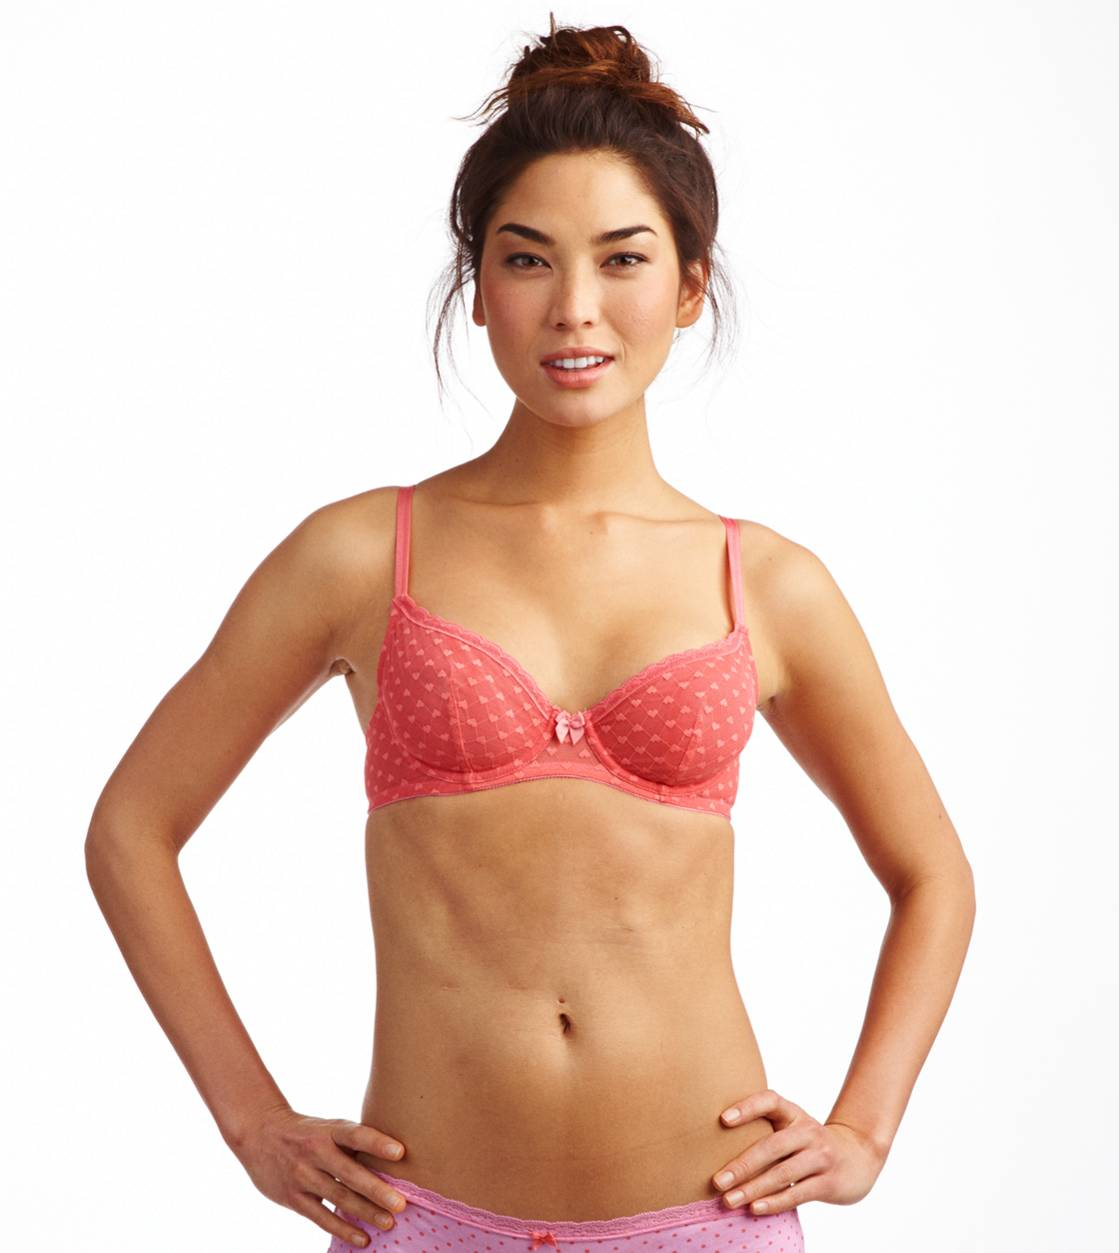 Candied Rhubarb Aerie Heart Mesh Unlined Bra